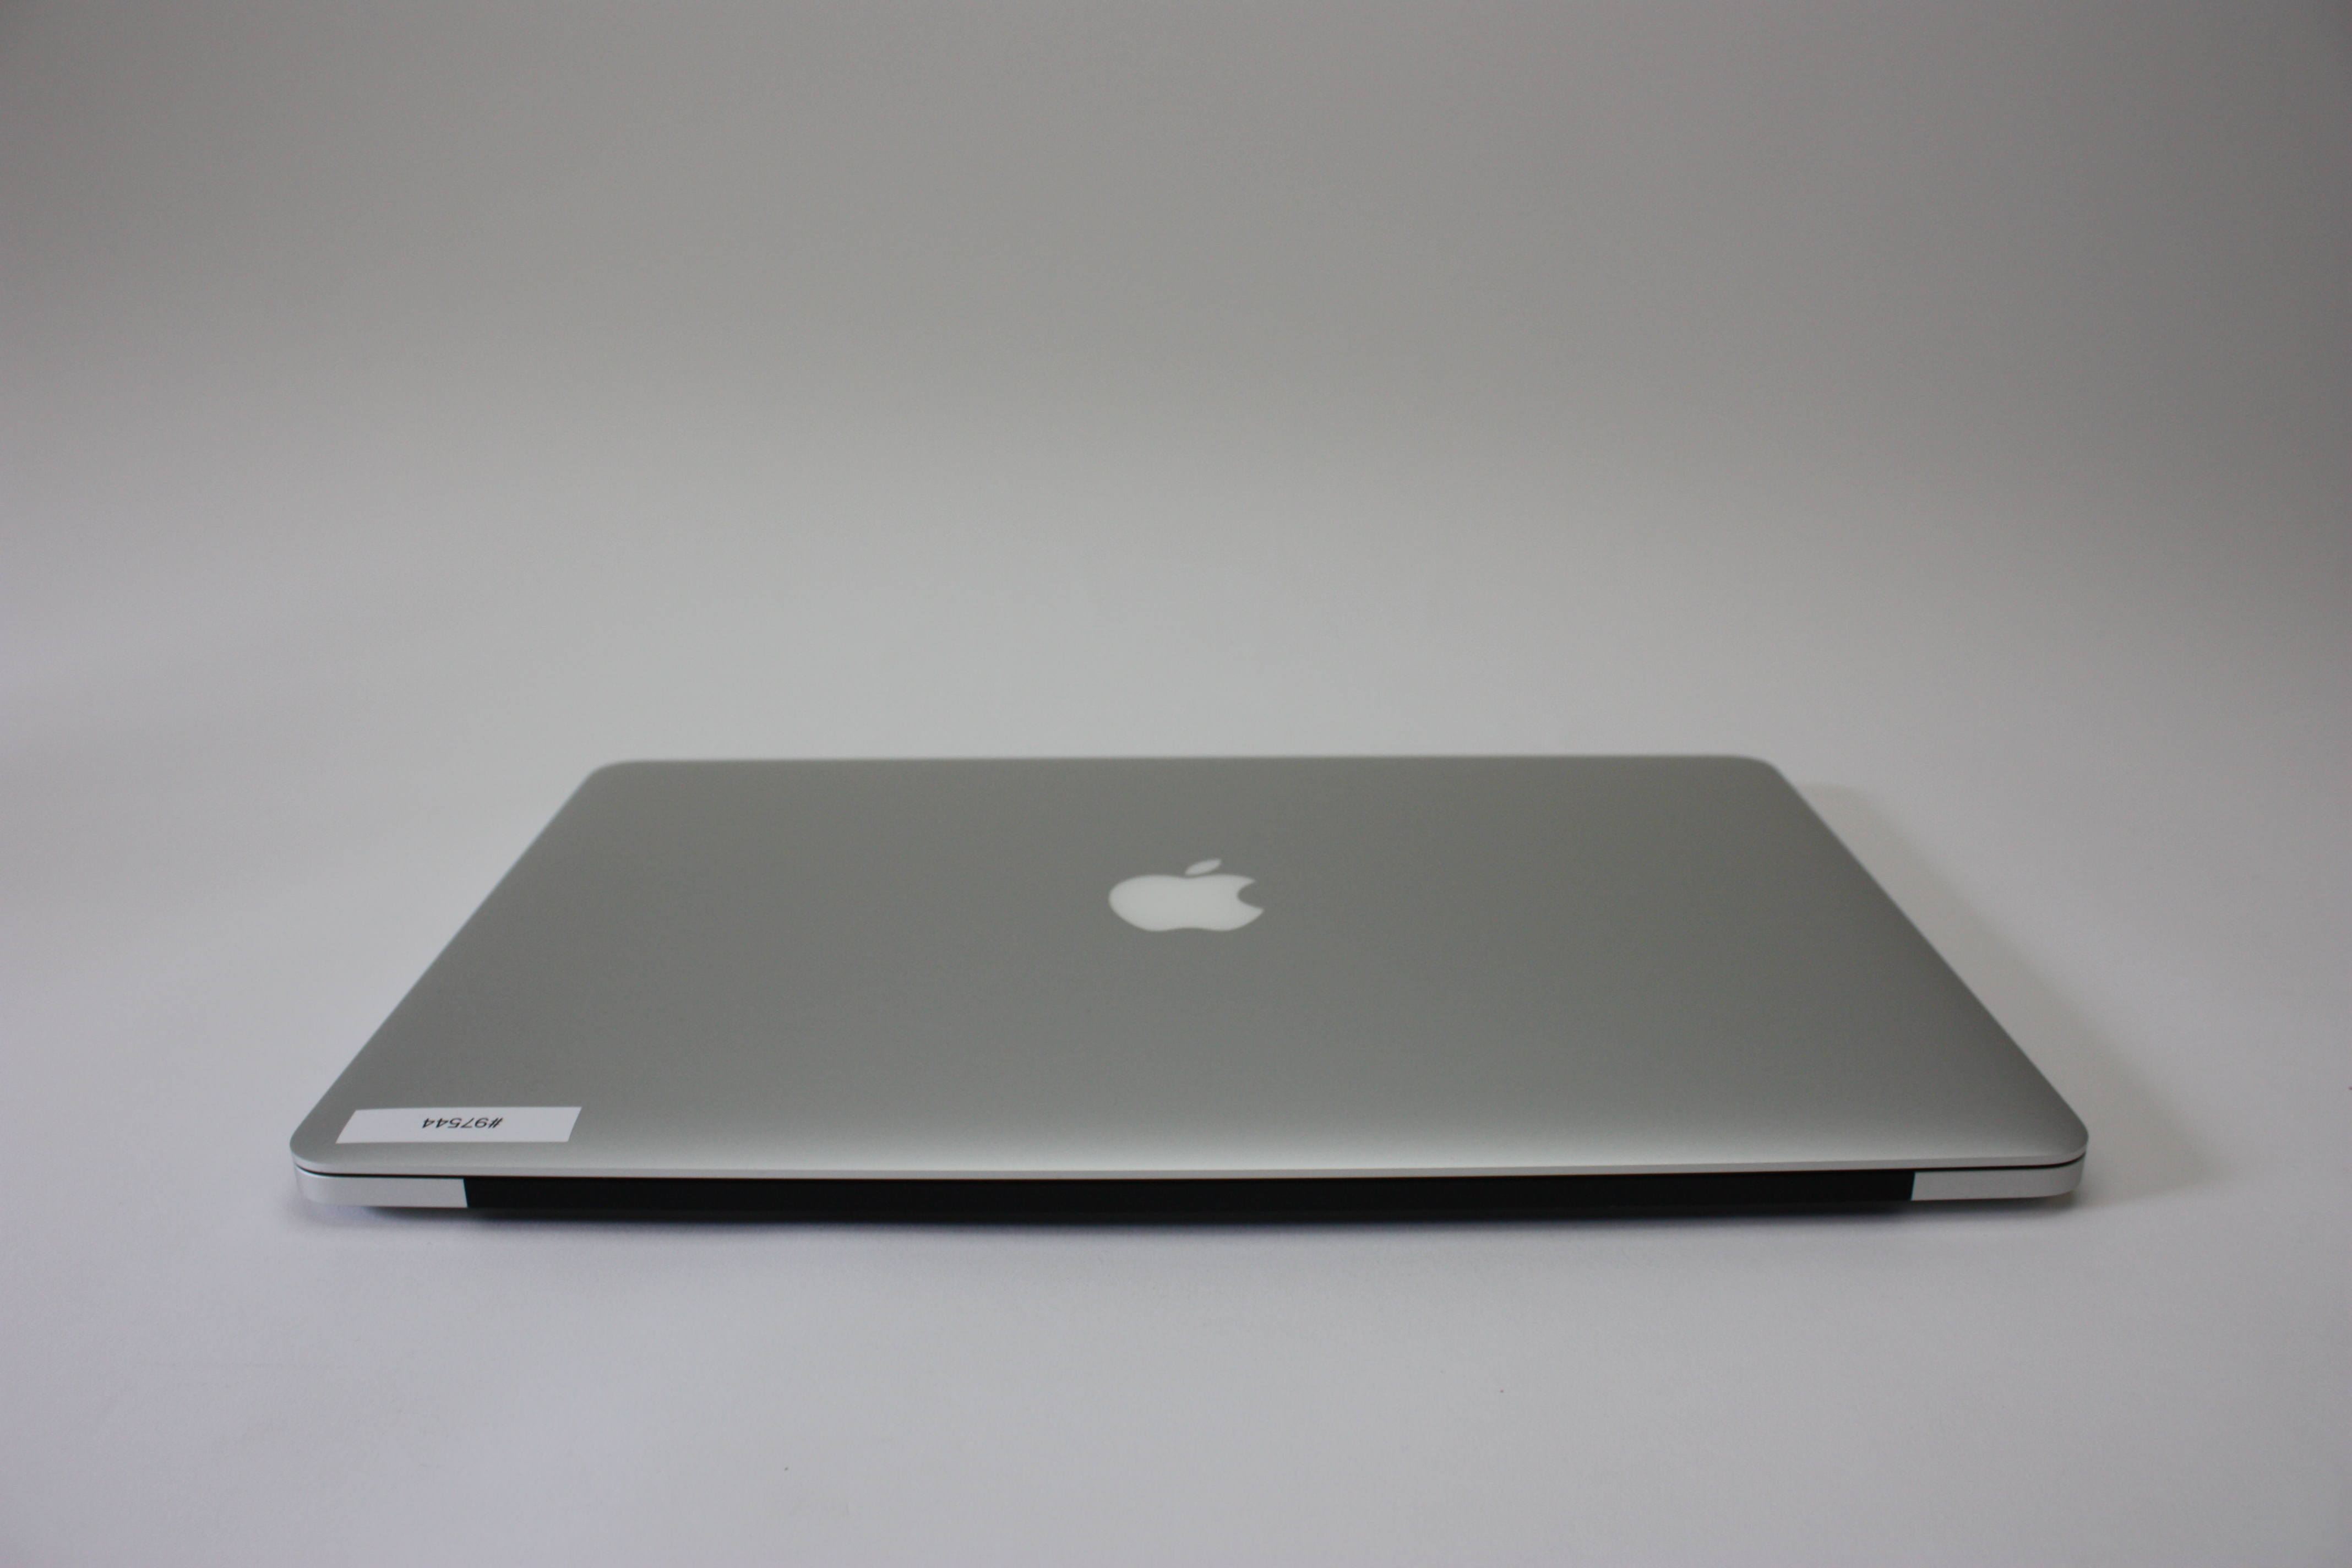 MacBook Pro 15-inch Retina, 2.3 GHz Core i7 (I7-3615QM), 8 GB 1600 MHz DDR3, 480 Solid State SATA Drive, Product age: 72 months, image 6